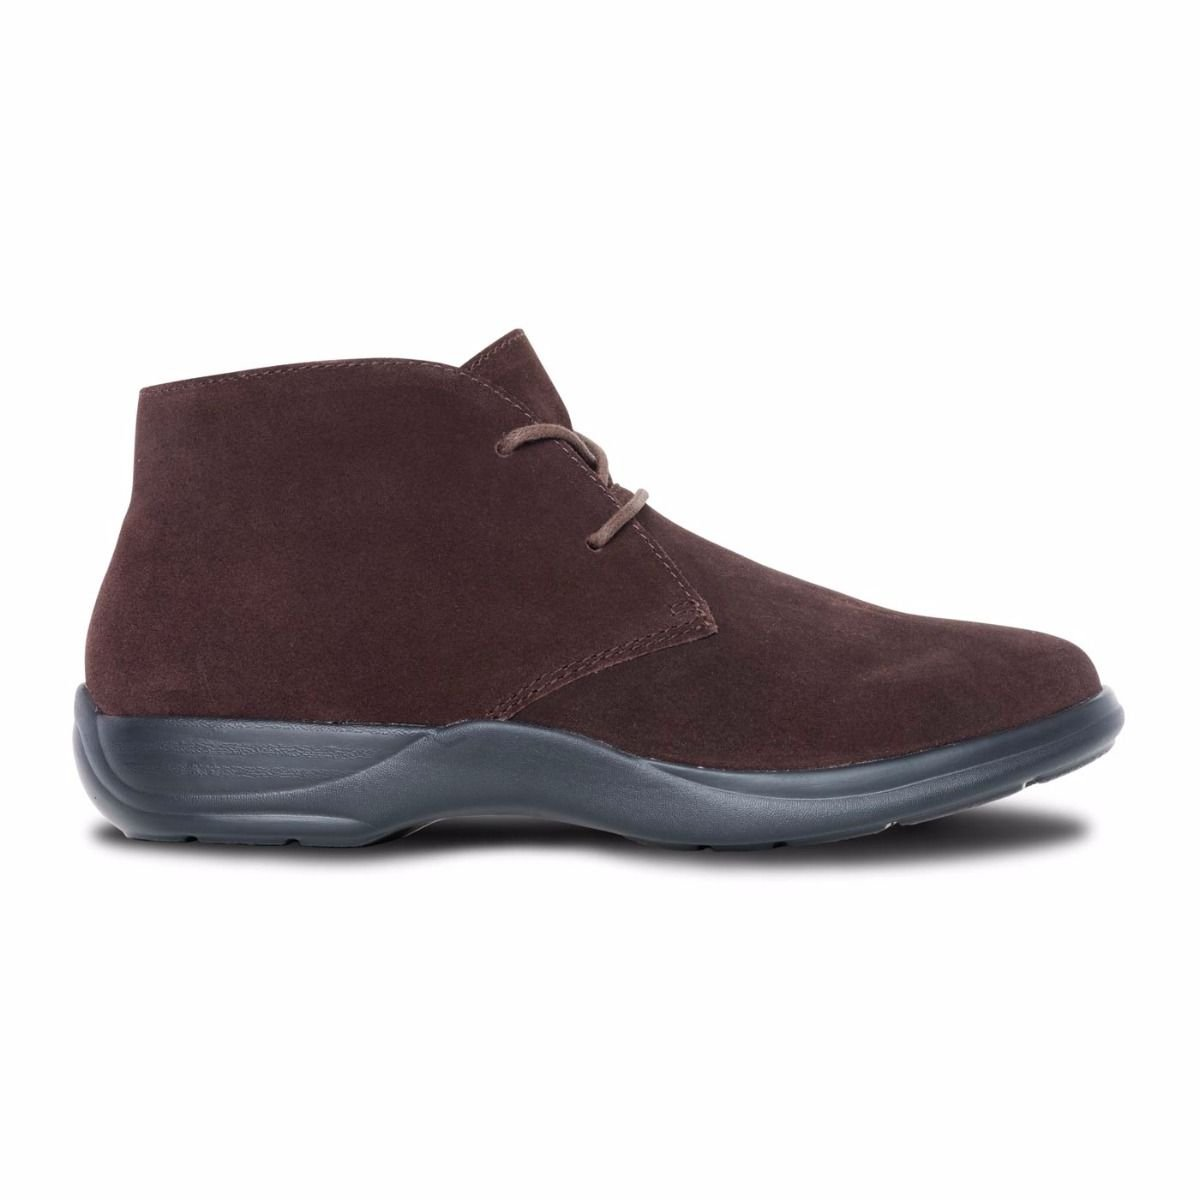 Dr. Comfort Women's Cara Casual Suede Brown Leather Bootie Chukka Boot Brown Suede B074ZRL8N6 7 E US|Brown 6fda32